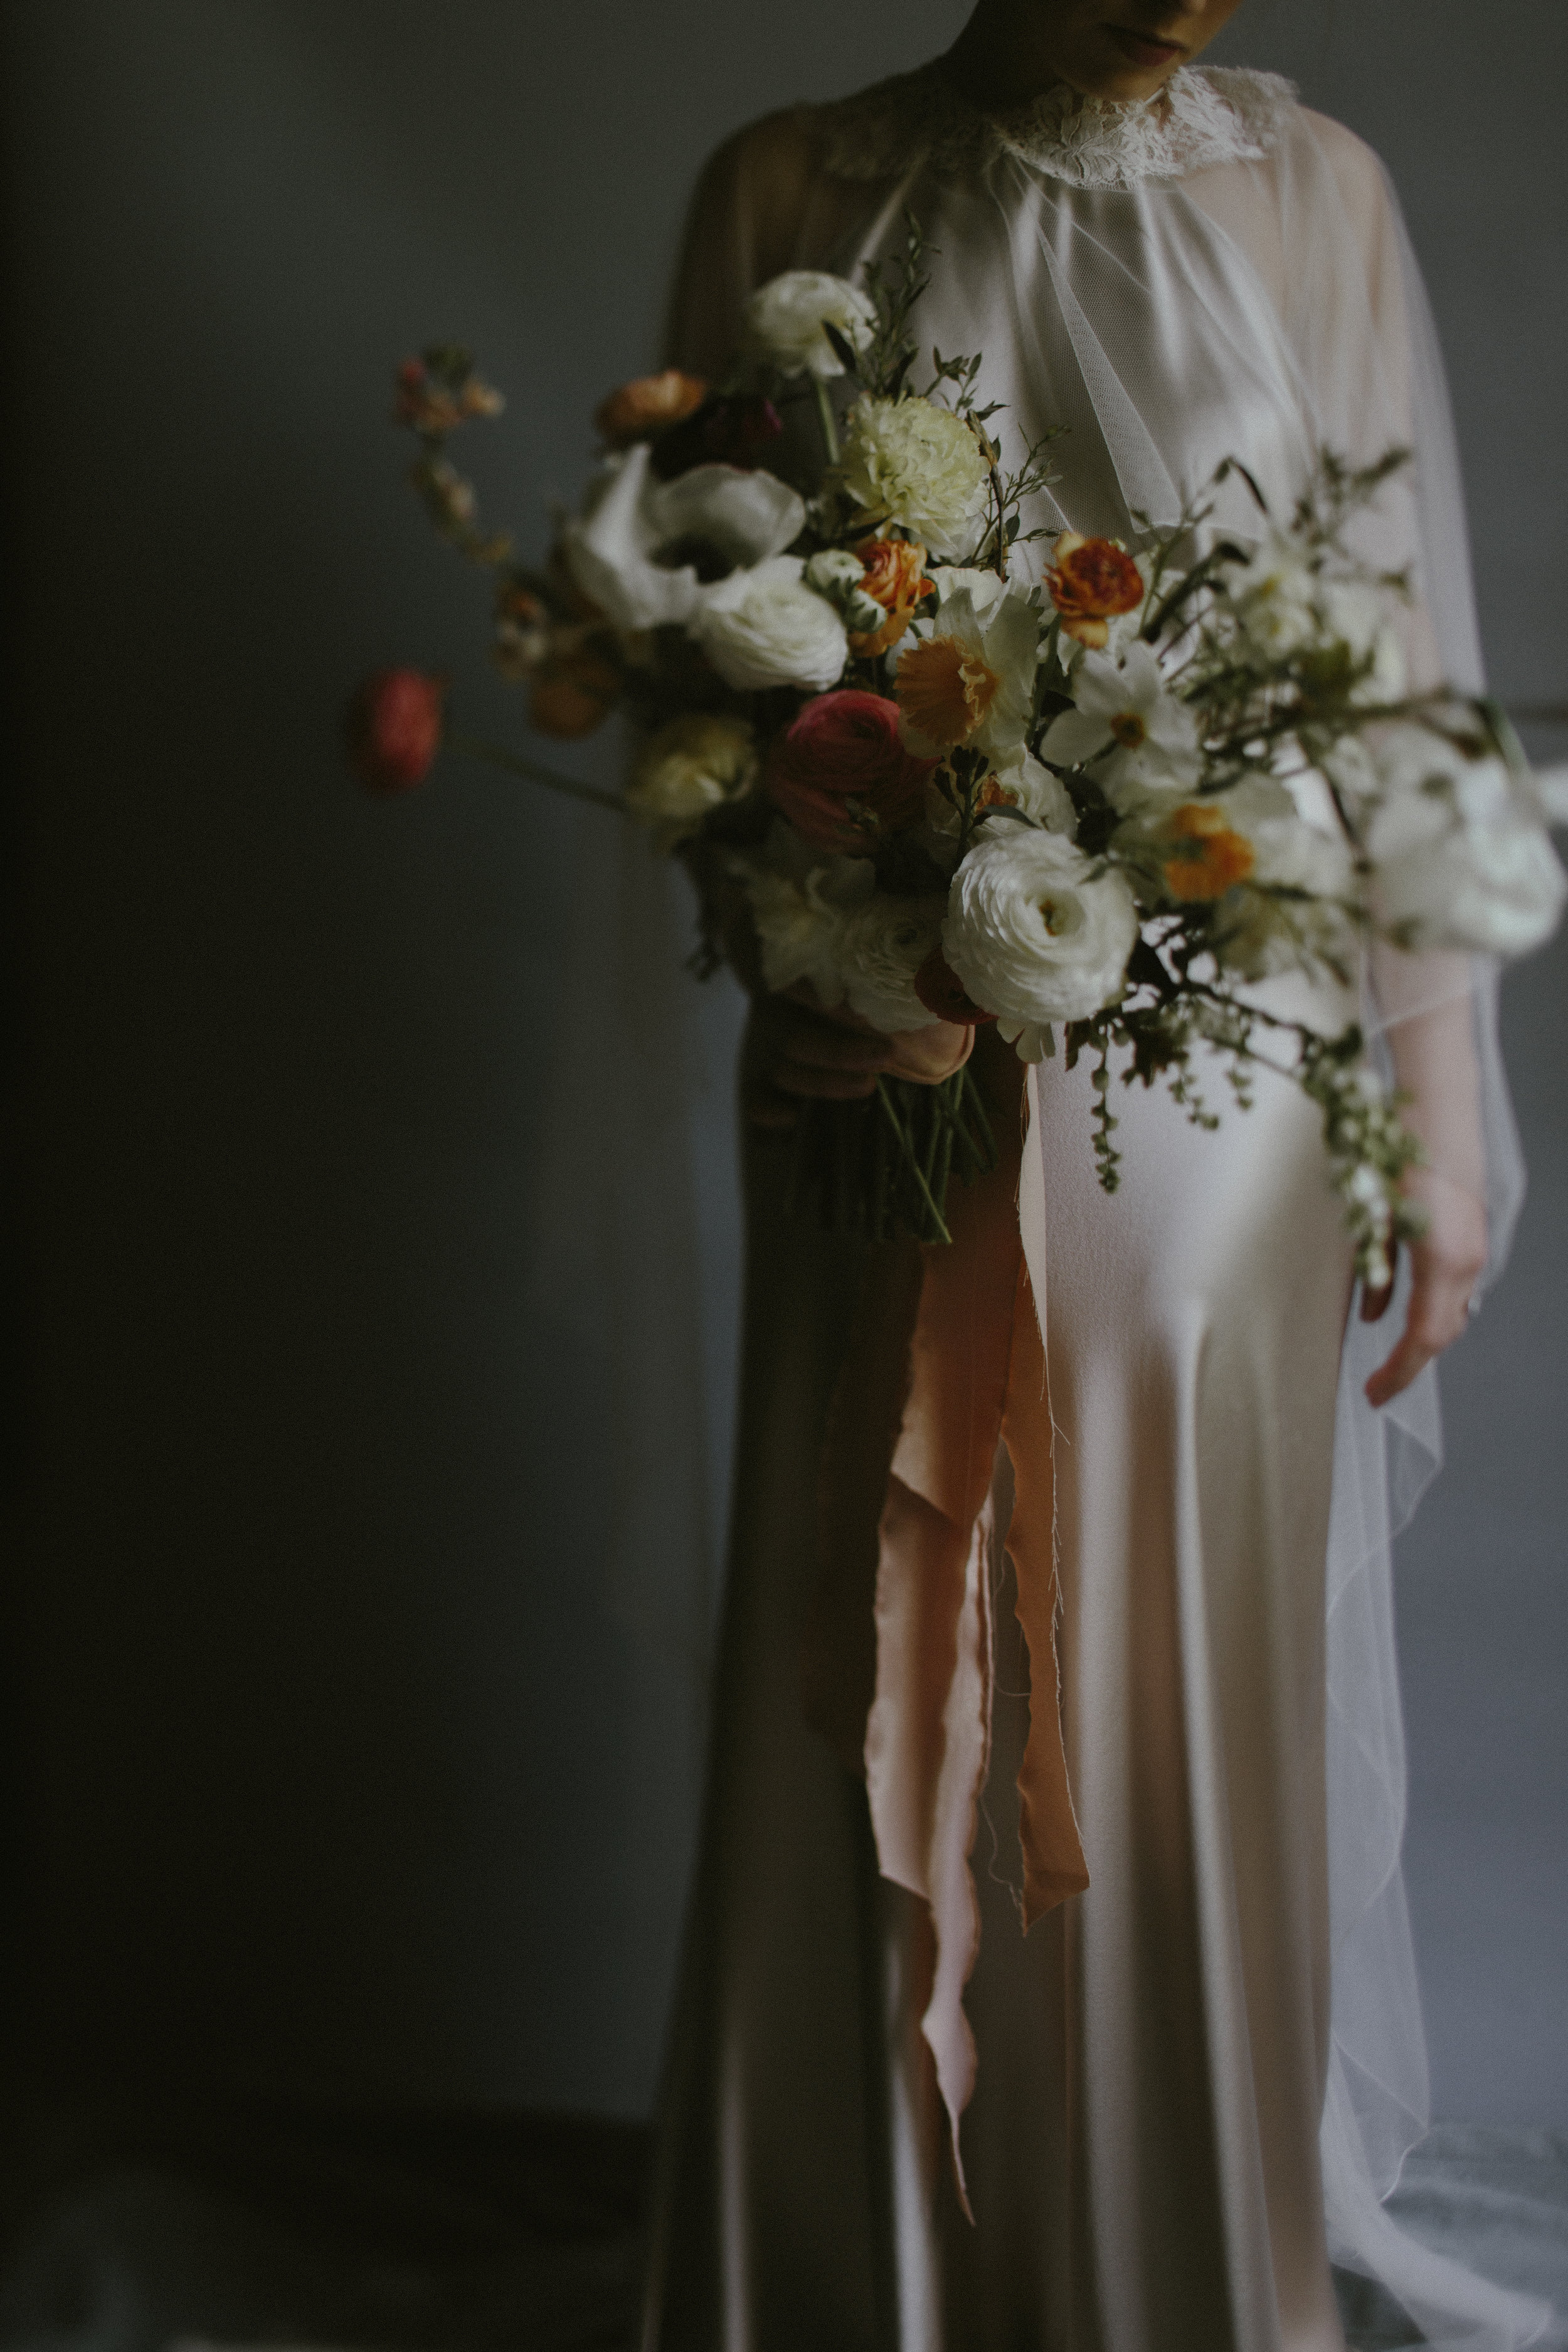 Agnes-and-bee-Kate-Beaumont-wedding-dresses-Ruth-Atkinson-12.jpg